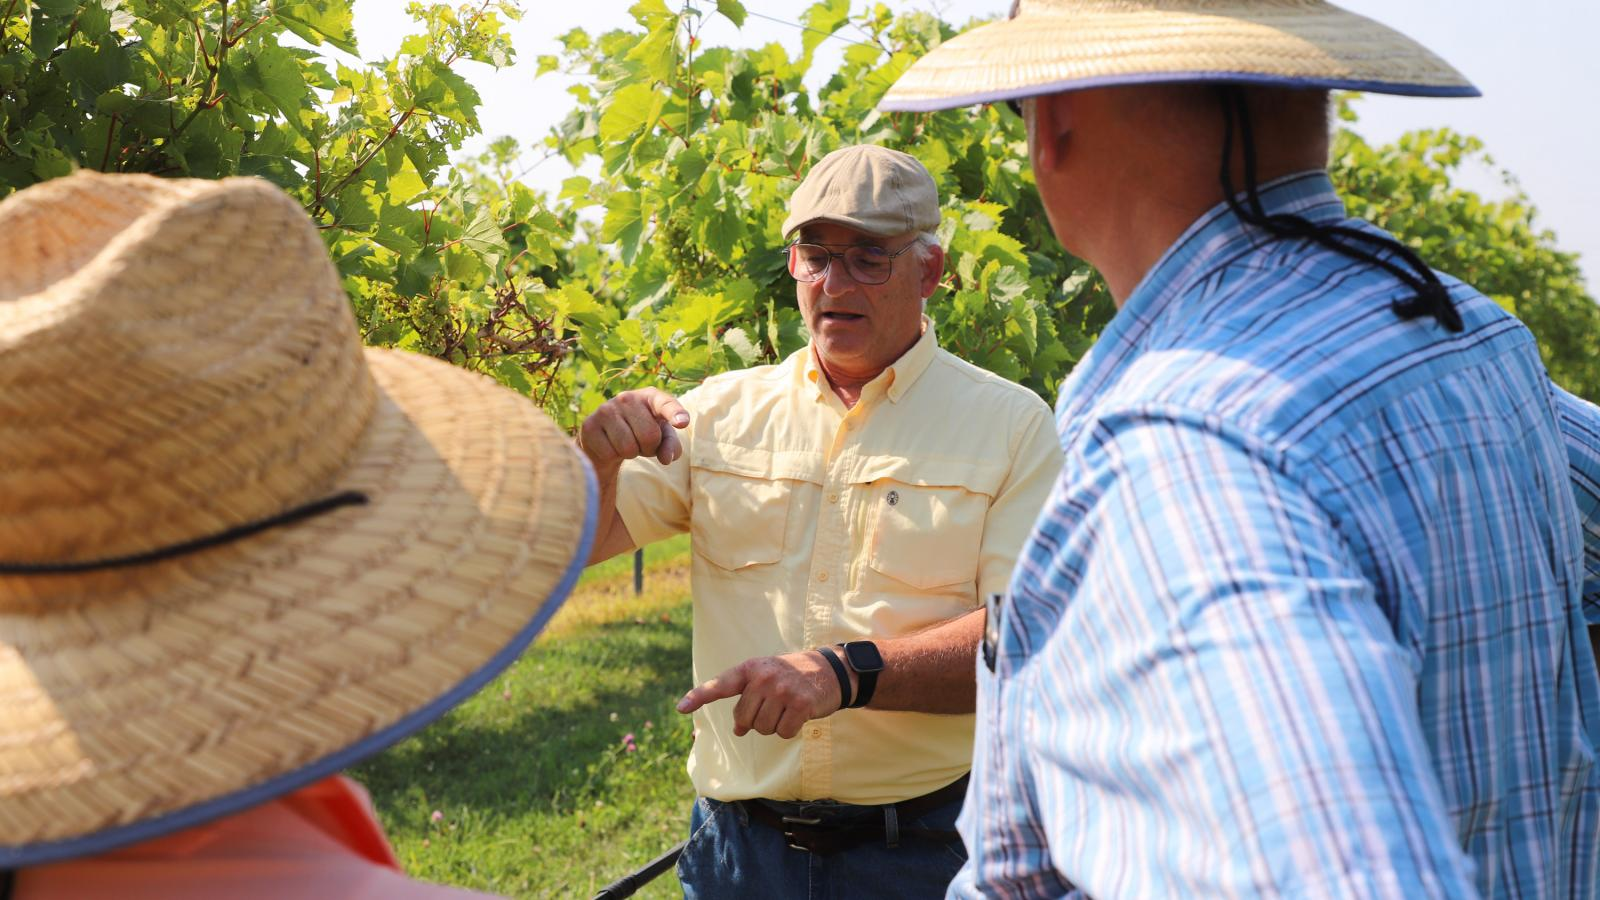 Stephen Gamet at Viticulture Field Day